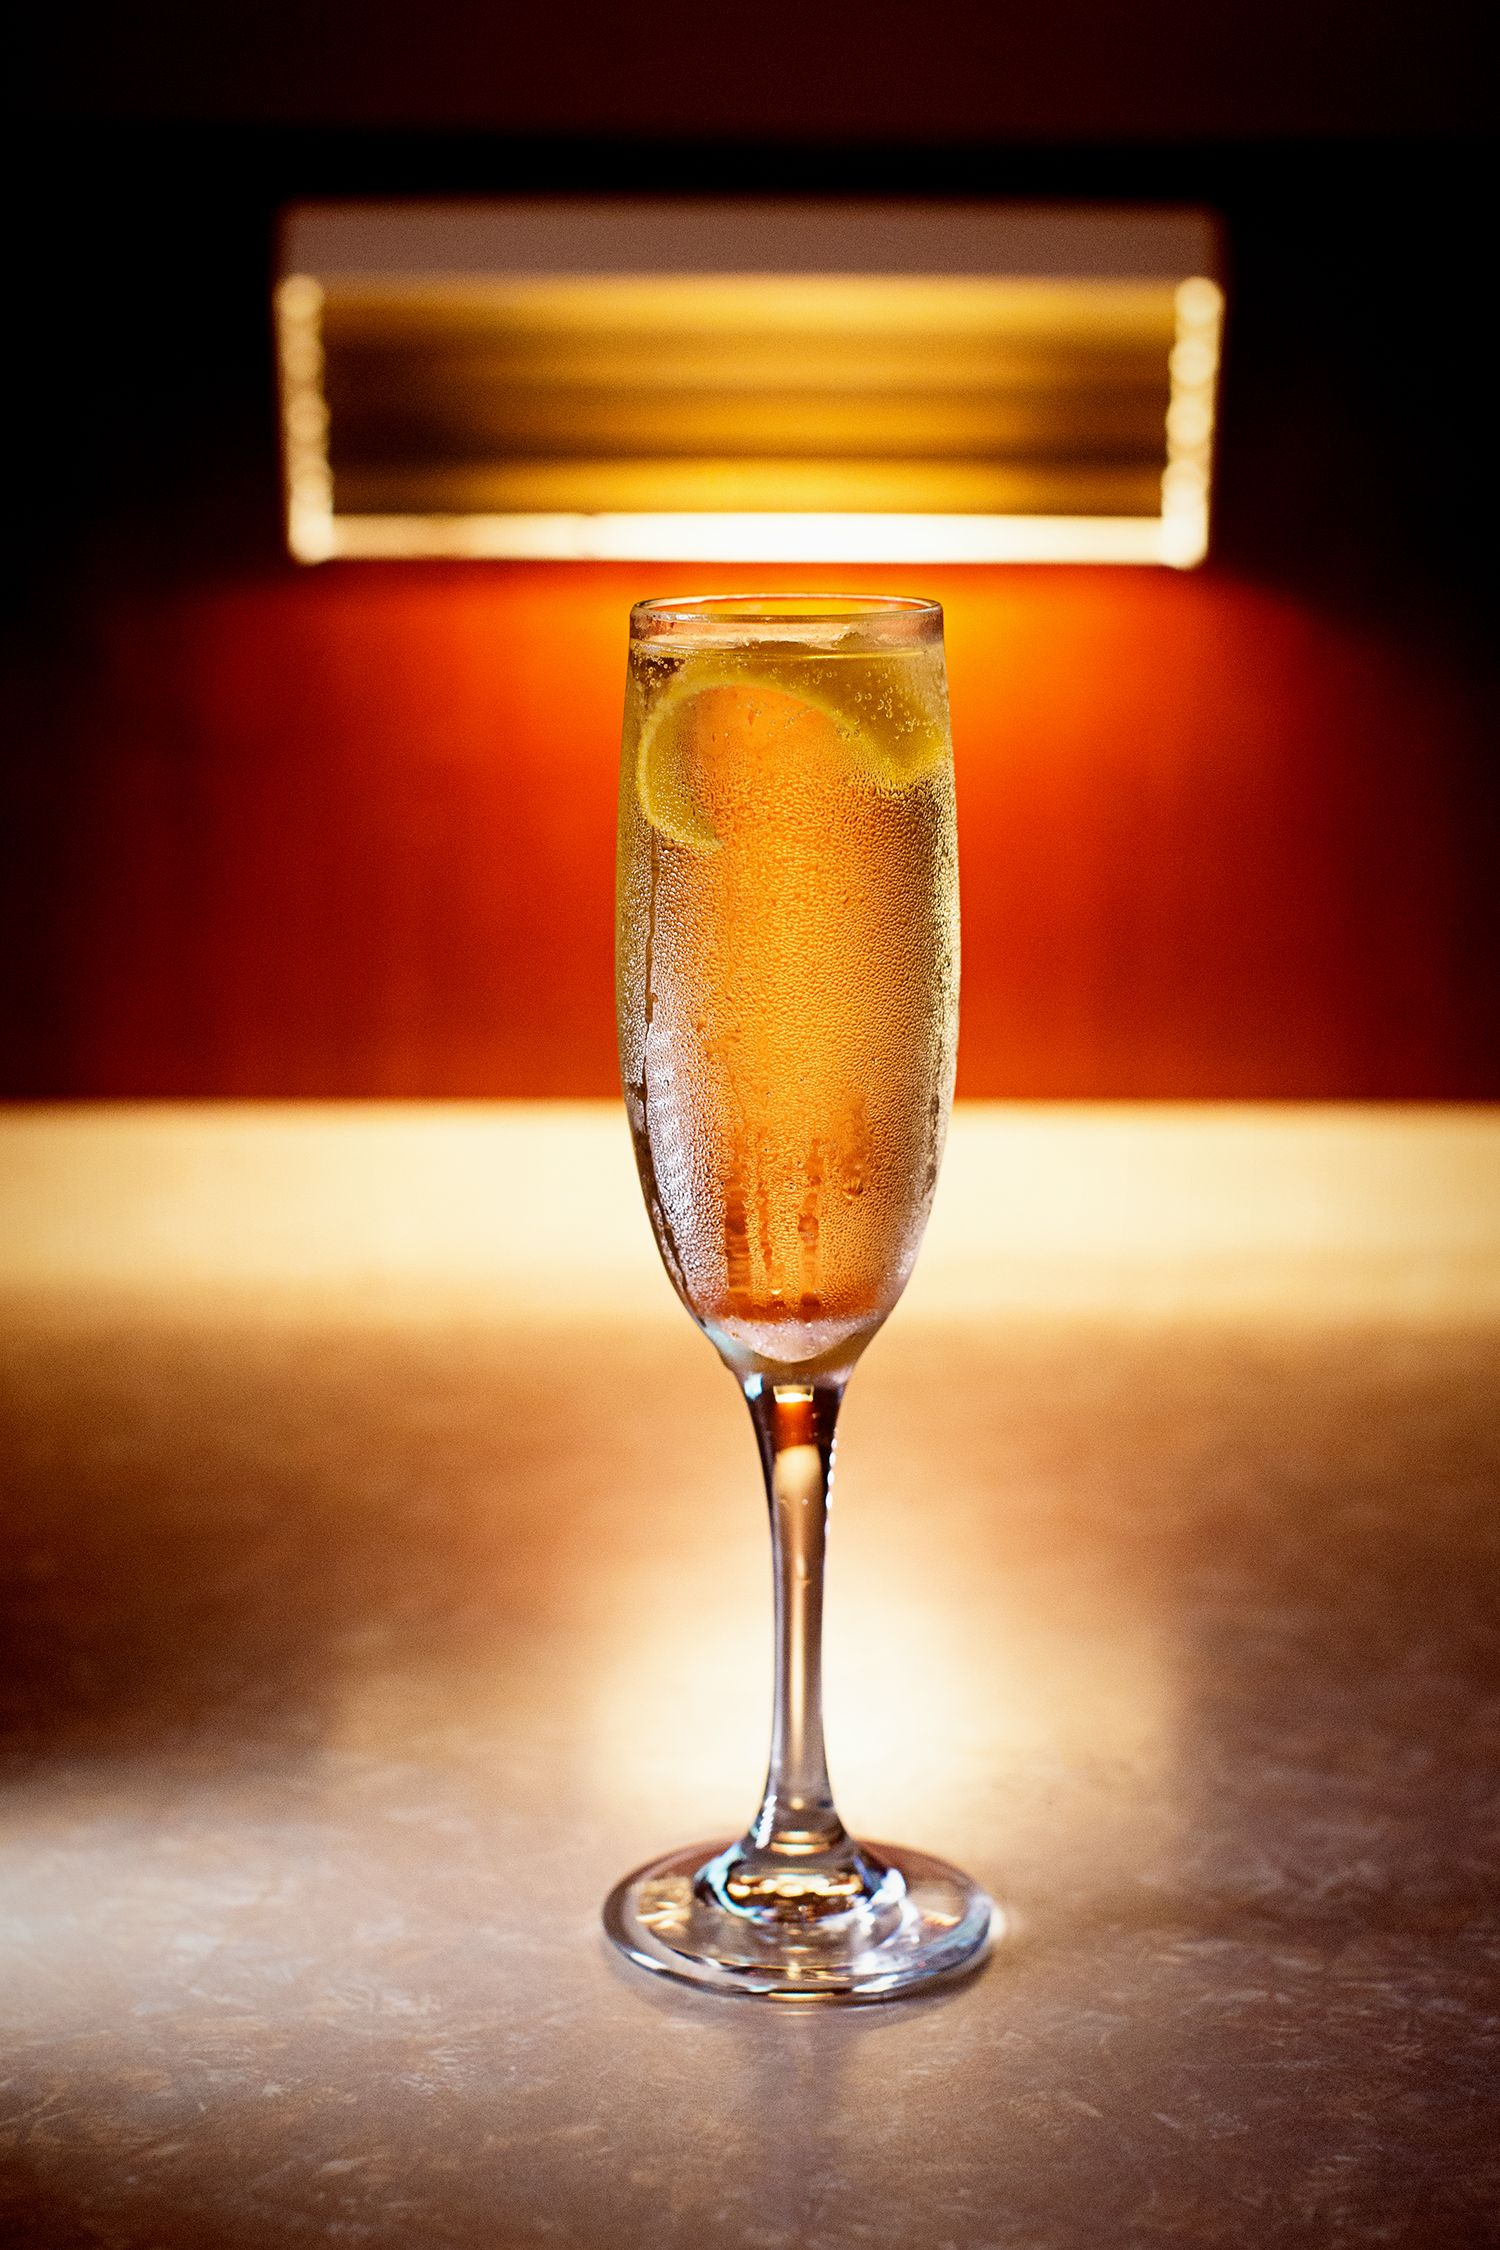 """<p>""""It's really beautiful, and perfect for an elegant party. It<br> elevates the pomp and circumstance of your traditional glass of Champagne.""""</p><p><strong>Ingredients:</strong> </p><p>• 4 oz sparkling wine</p><p>• 1 sugar cube</p><p>• Angostura bitters</p><p><strong>Directions:</strong></p><p>Soak the sugar cube in Angostura bitters and drop into a champagne flute. Fill with sparkling wine (a dry prosecco will also do). Garnish with a lemon twist.</p>"""